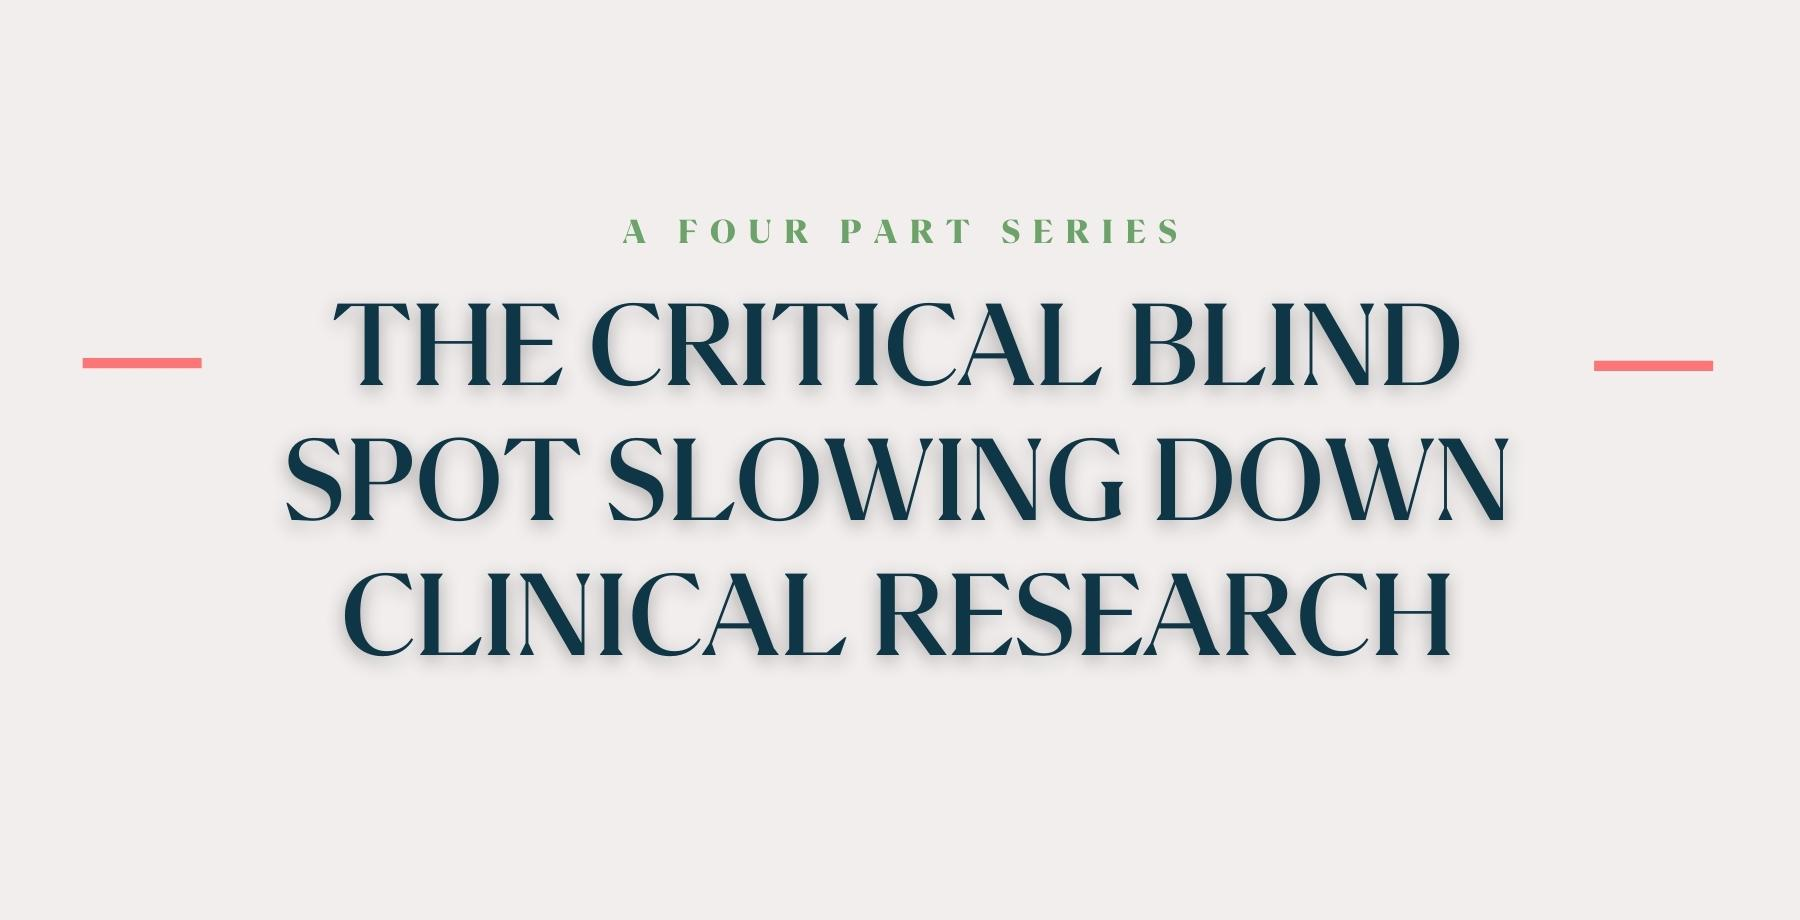 The_Critical_Blind_Spot_Slowing_Down_Clinical_Research